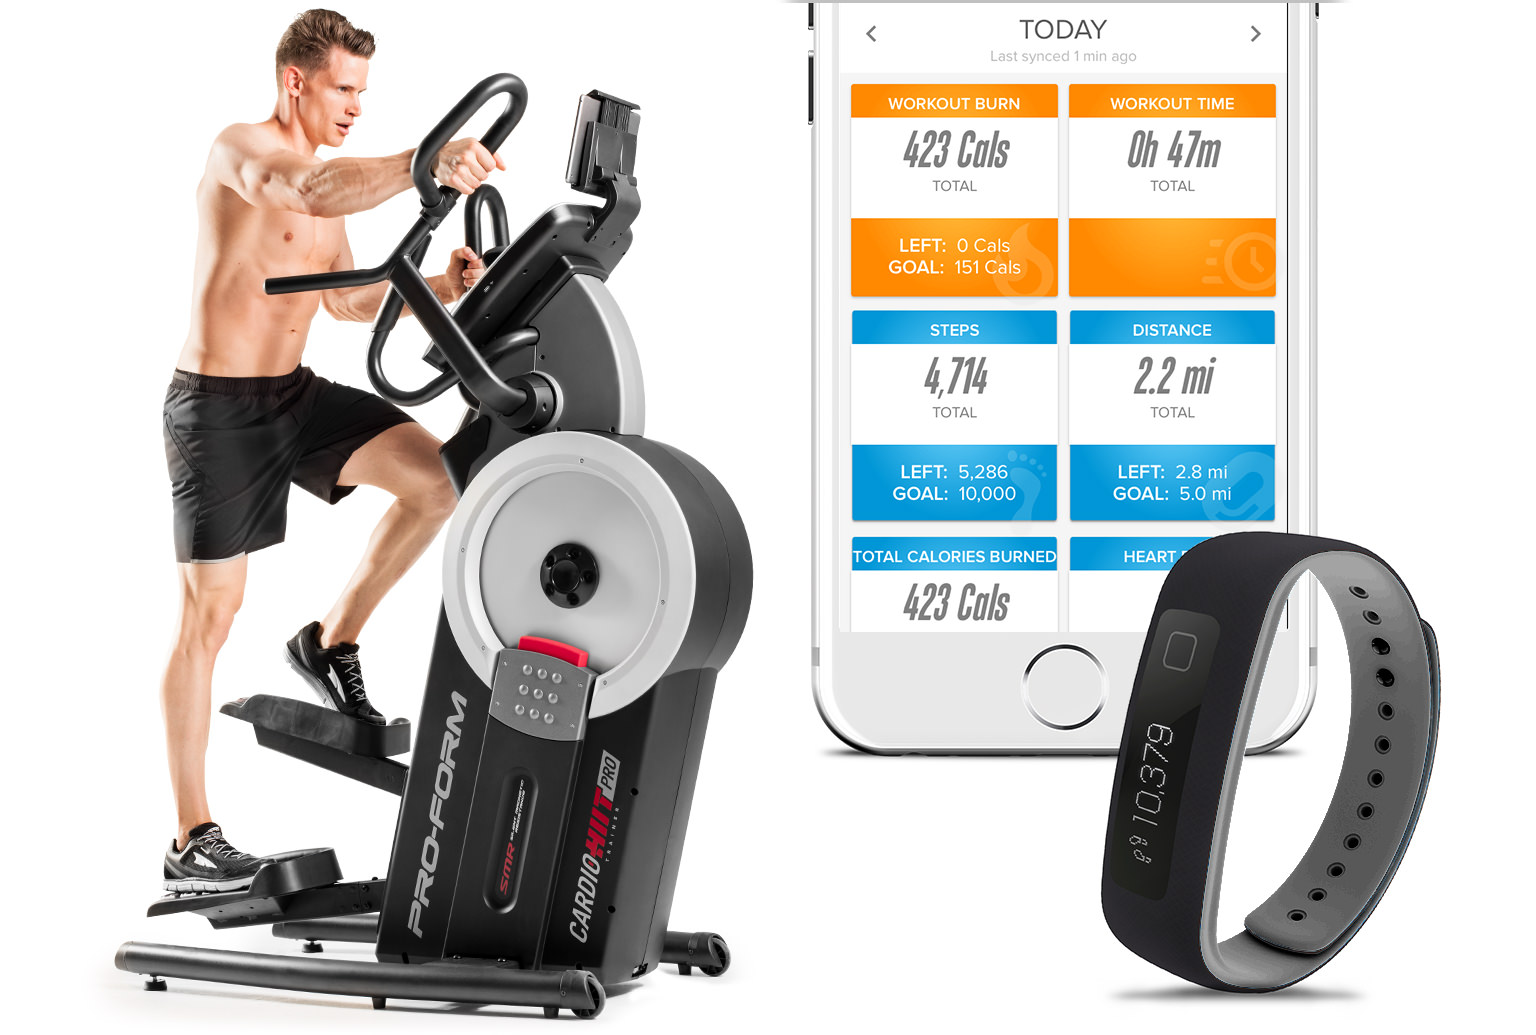 Trck your workout using wearables and equipment